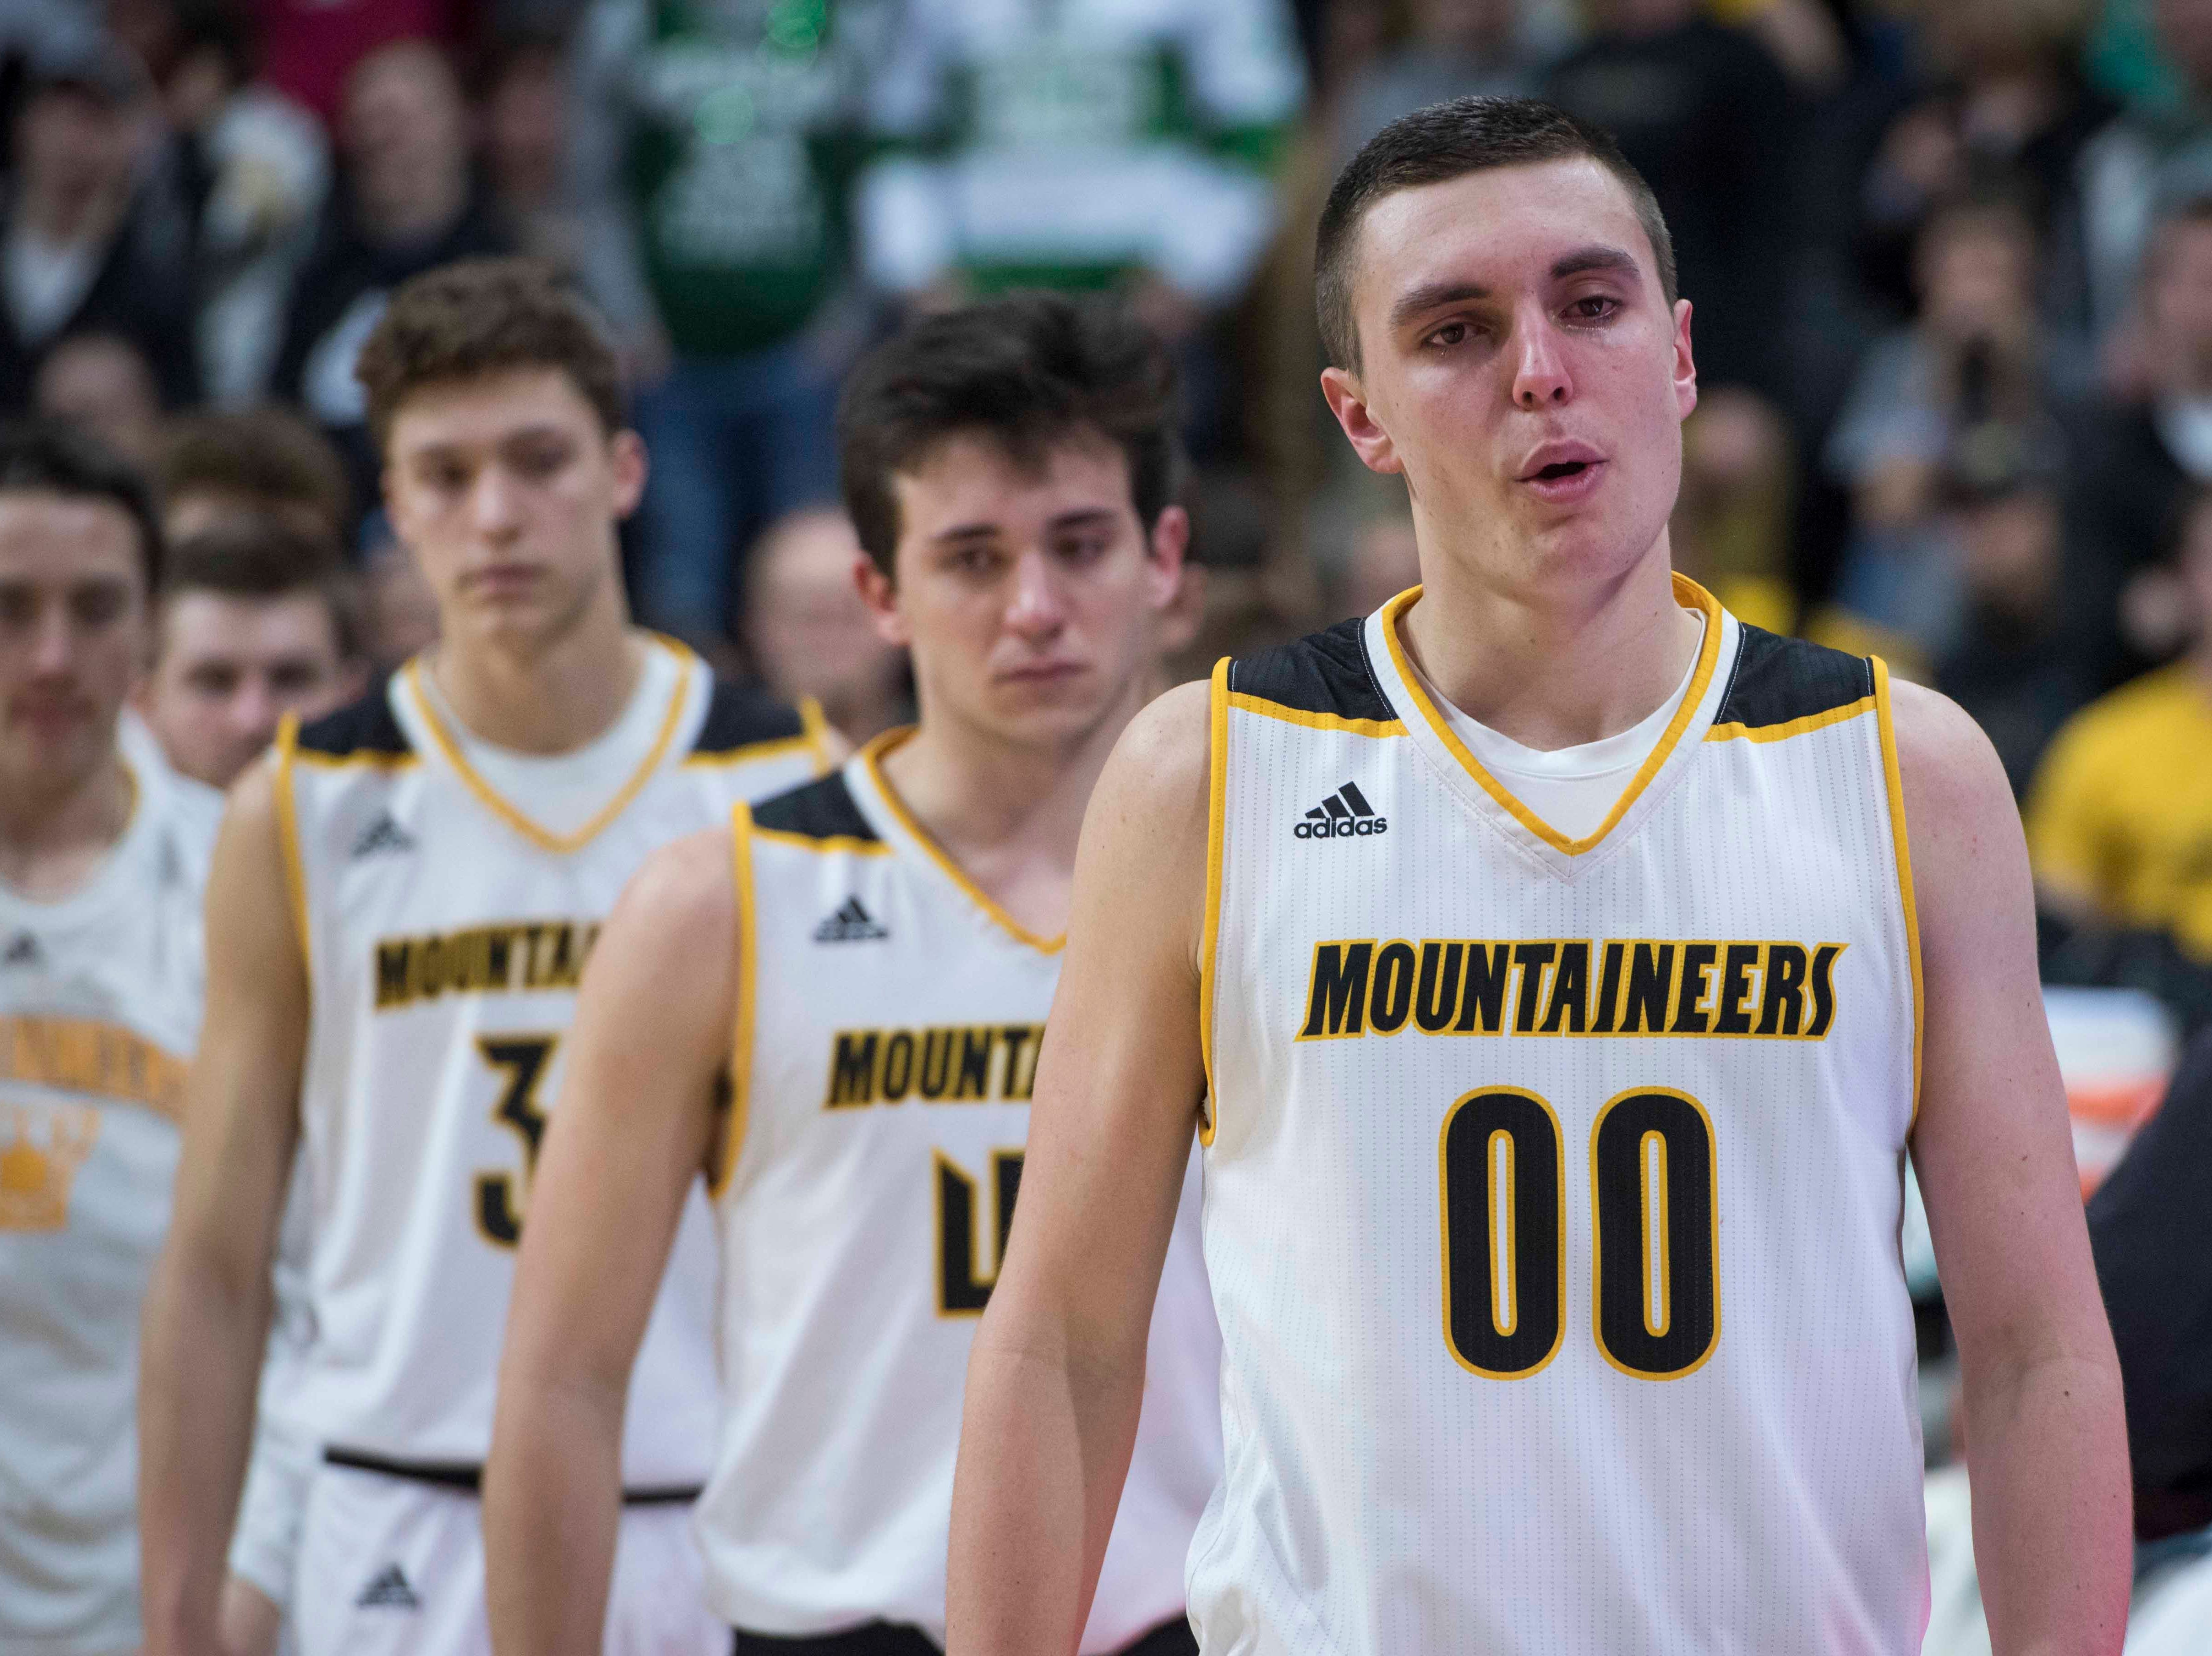 Iron Mountain's Foster Wonders looks on after his team lost the game.